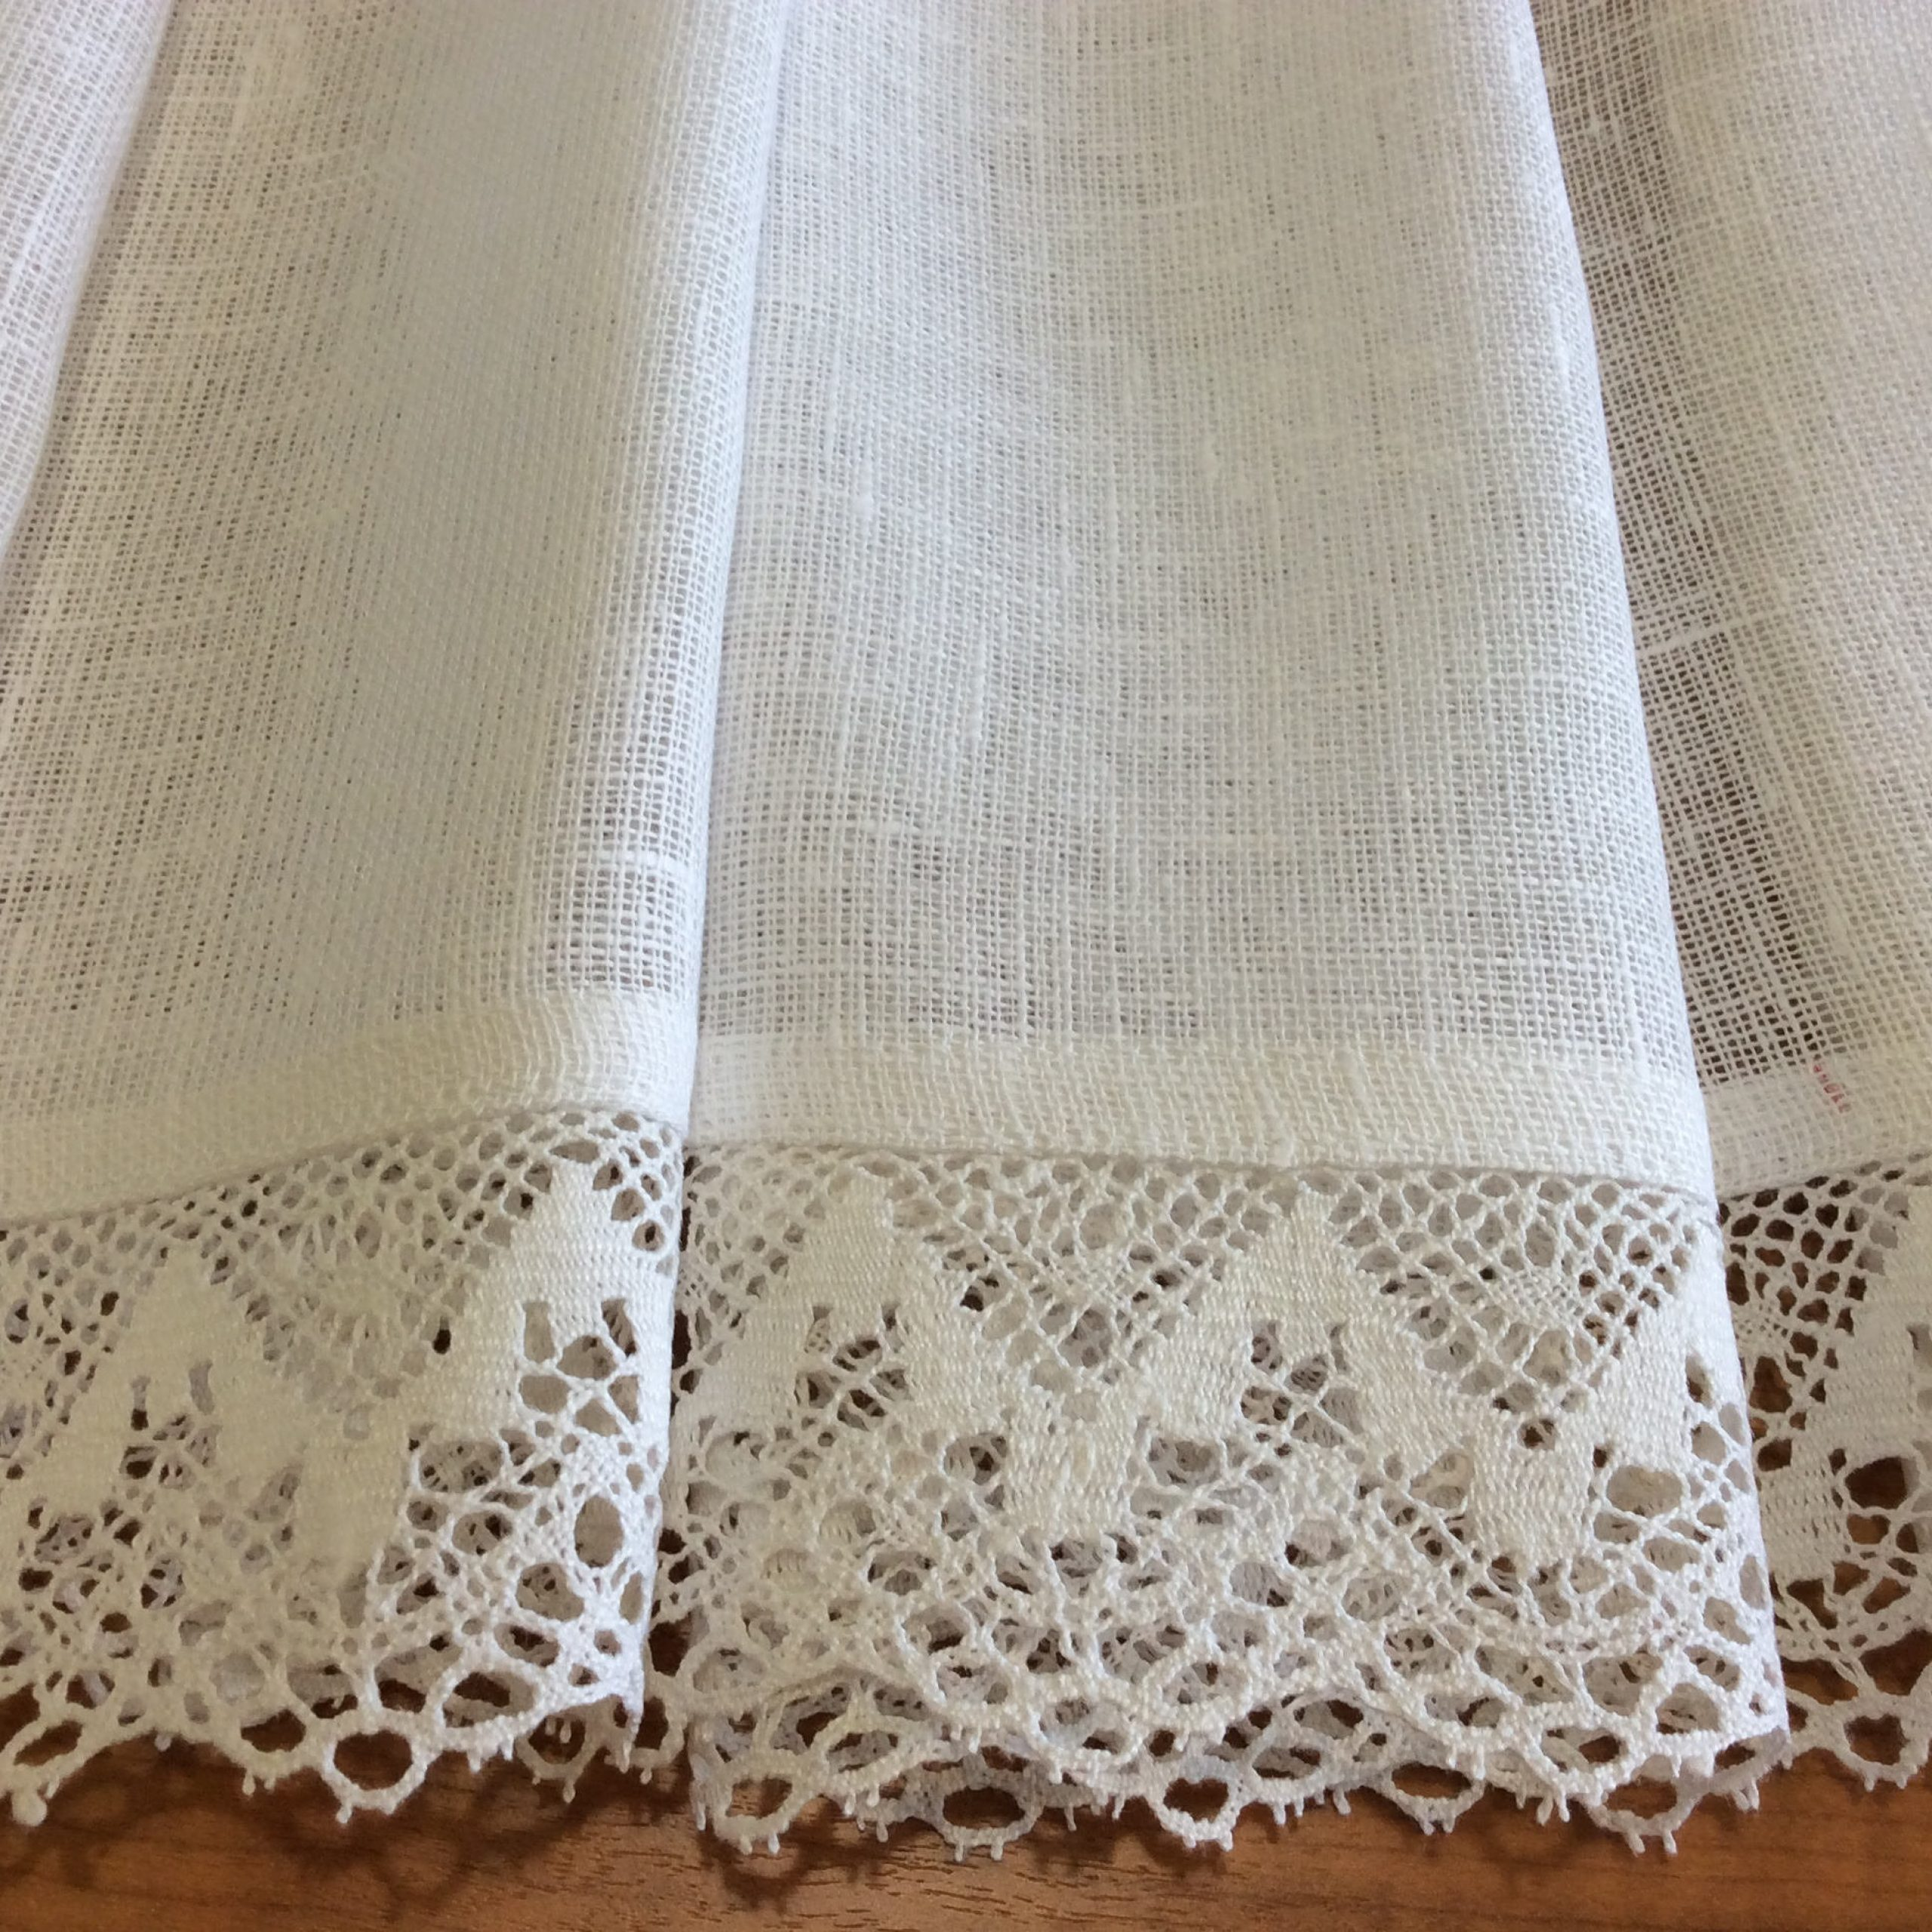 Well Known White Linen Curtain Panels Kitchen Cafe Curtains Rustic Curtains Linen Drapes Curtain Valances Handmade Gift Eco Friendly In Rustic Kitchen Curtains (View 16 of 20)